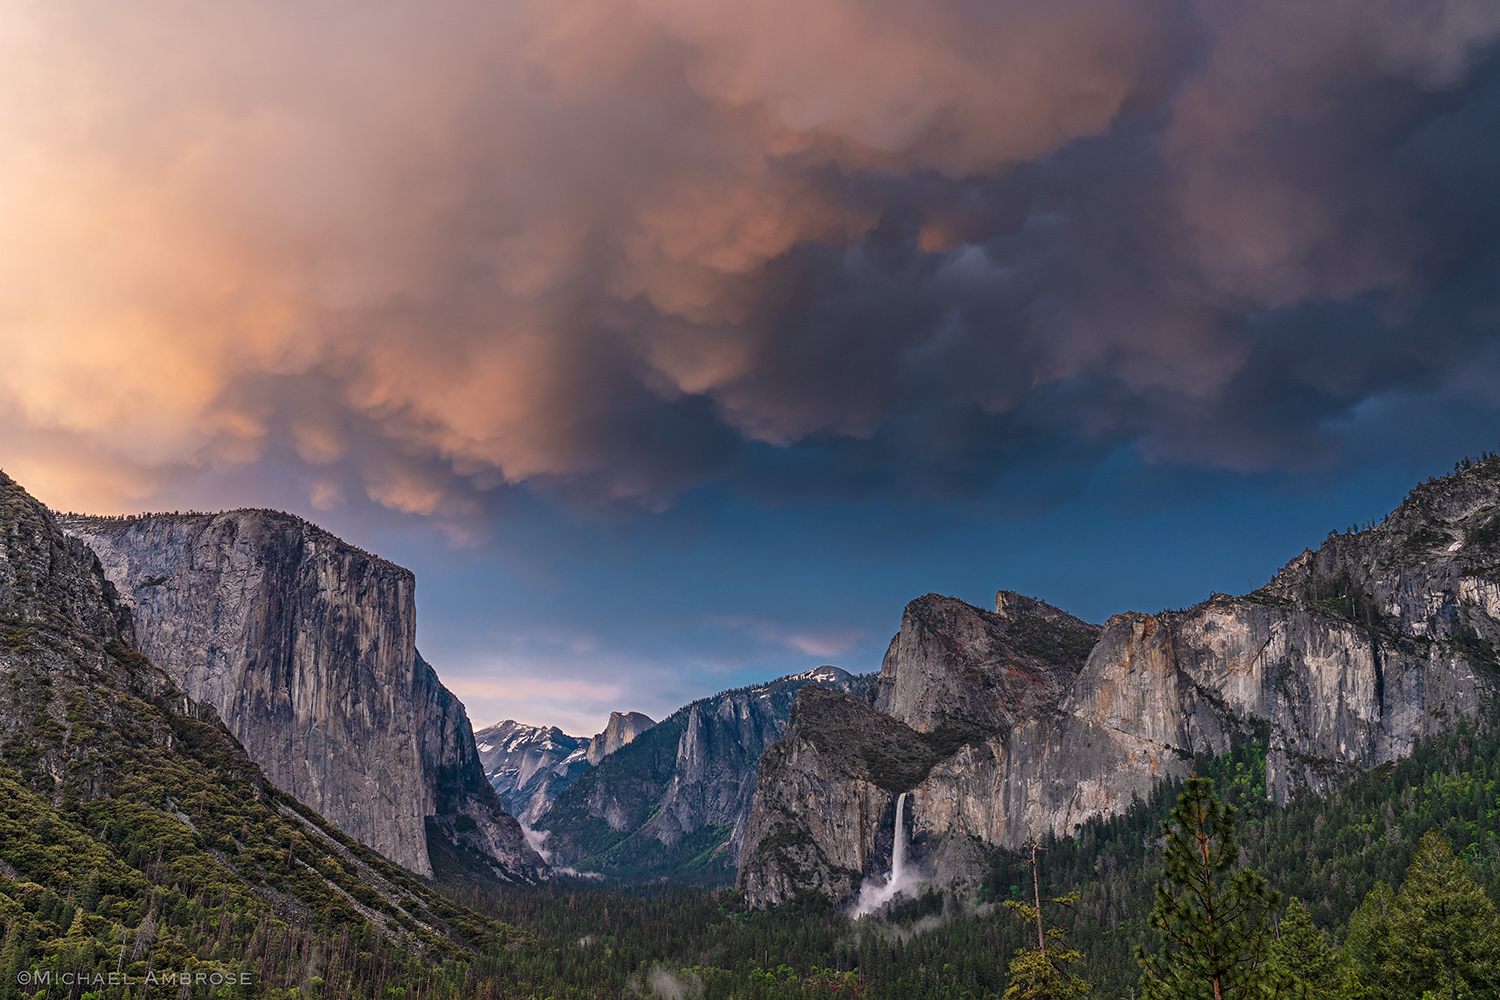 Tunnel View in Yosemite with views of El Capitan, Half Dome, and Bridalveil Fall at sunset.